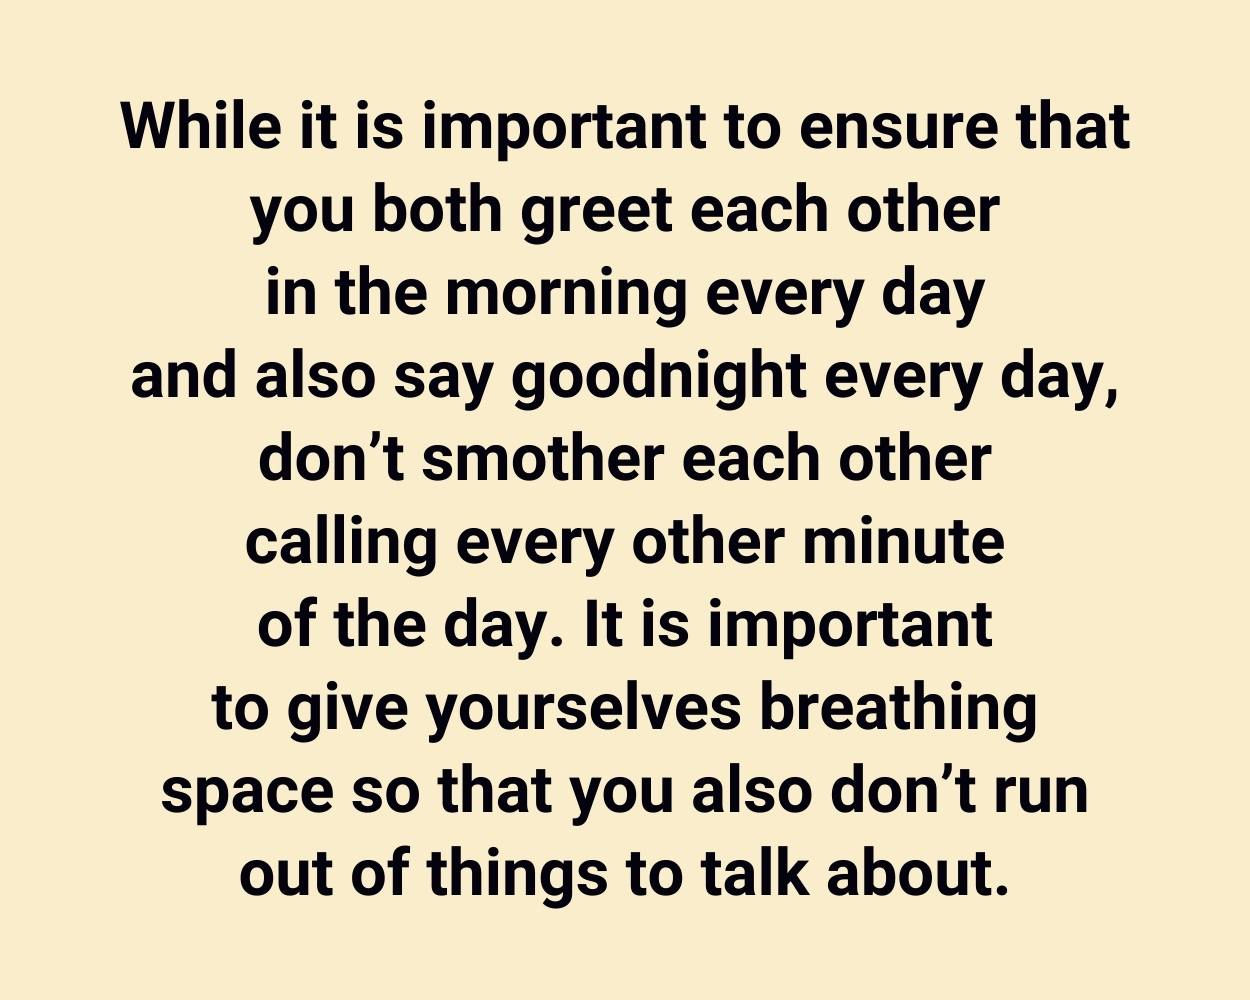 While it is important to ensure that you both greet each other in the morning every day and also say goodnight every day, don't smother each other calling every other minute of the day. It is important to give yourselves breathing space so that you also don't run out of things to talk about.